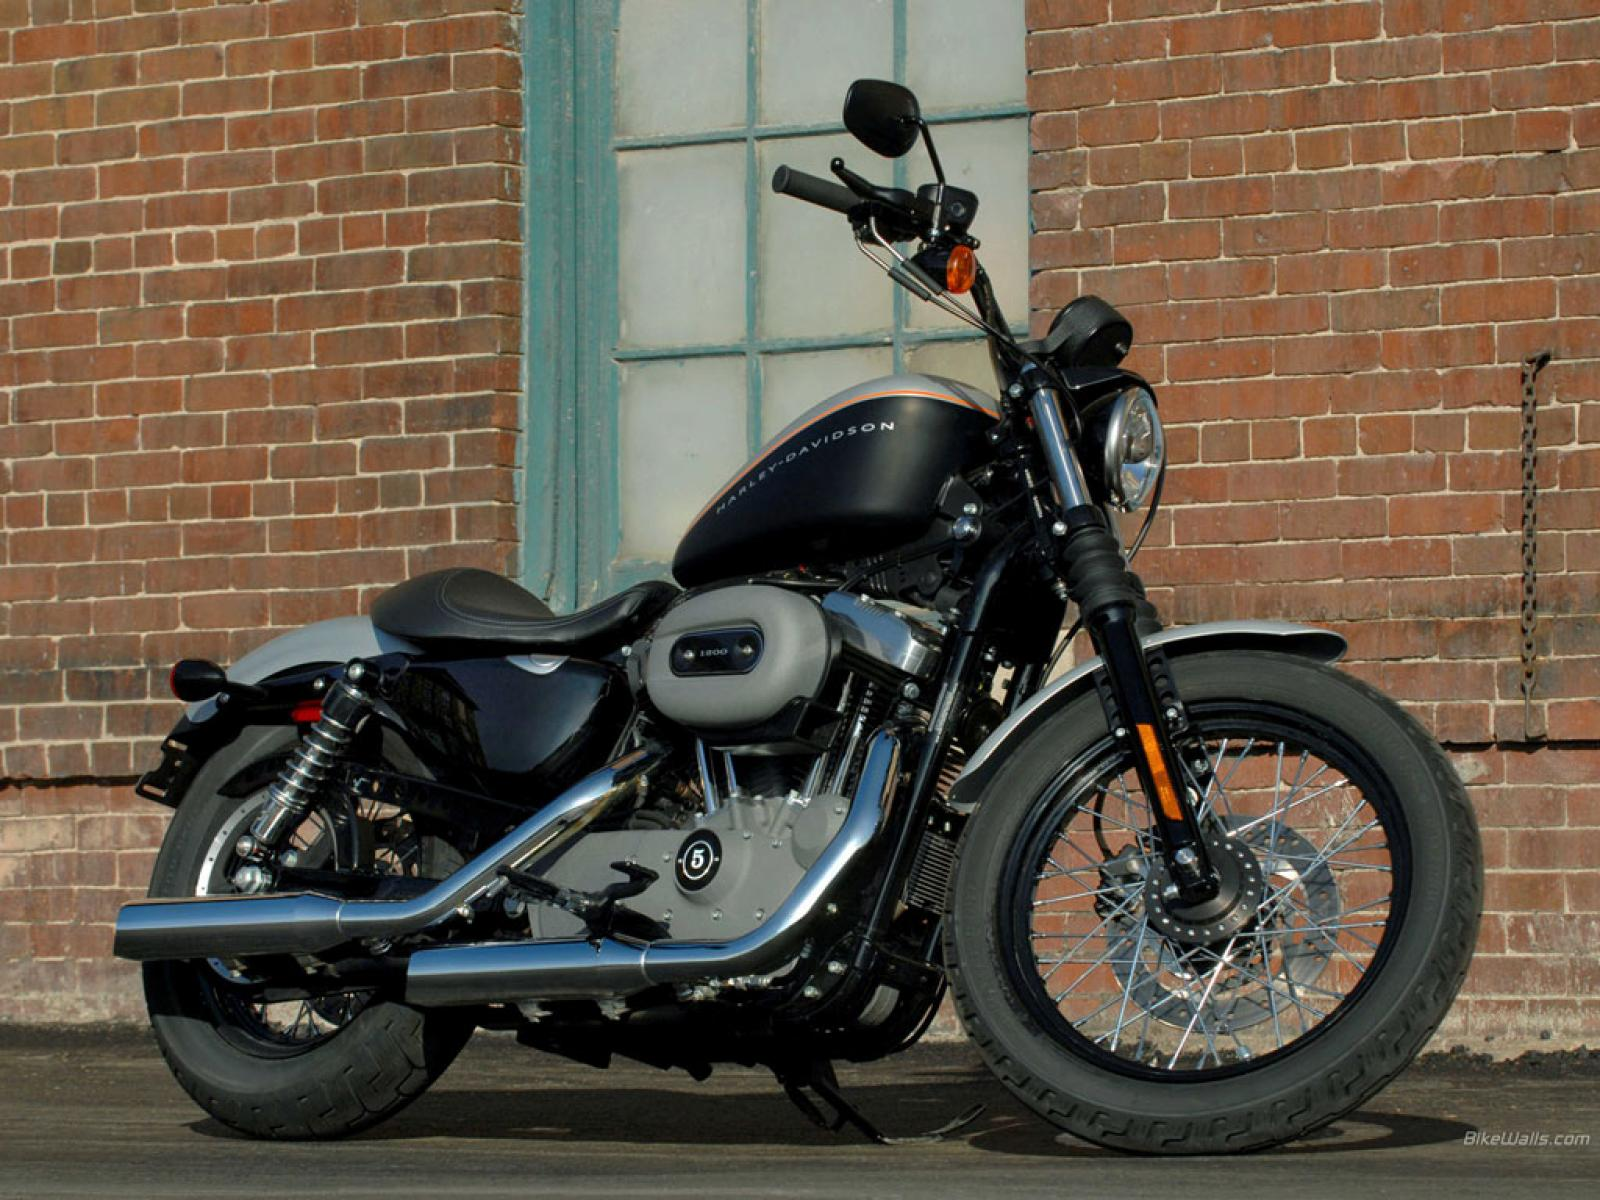 2010 harley davidson xl1200n sportster 1200 nightster moto zombdrive com. Black Bedroom Furniture Sets. Home Design Ideas